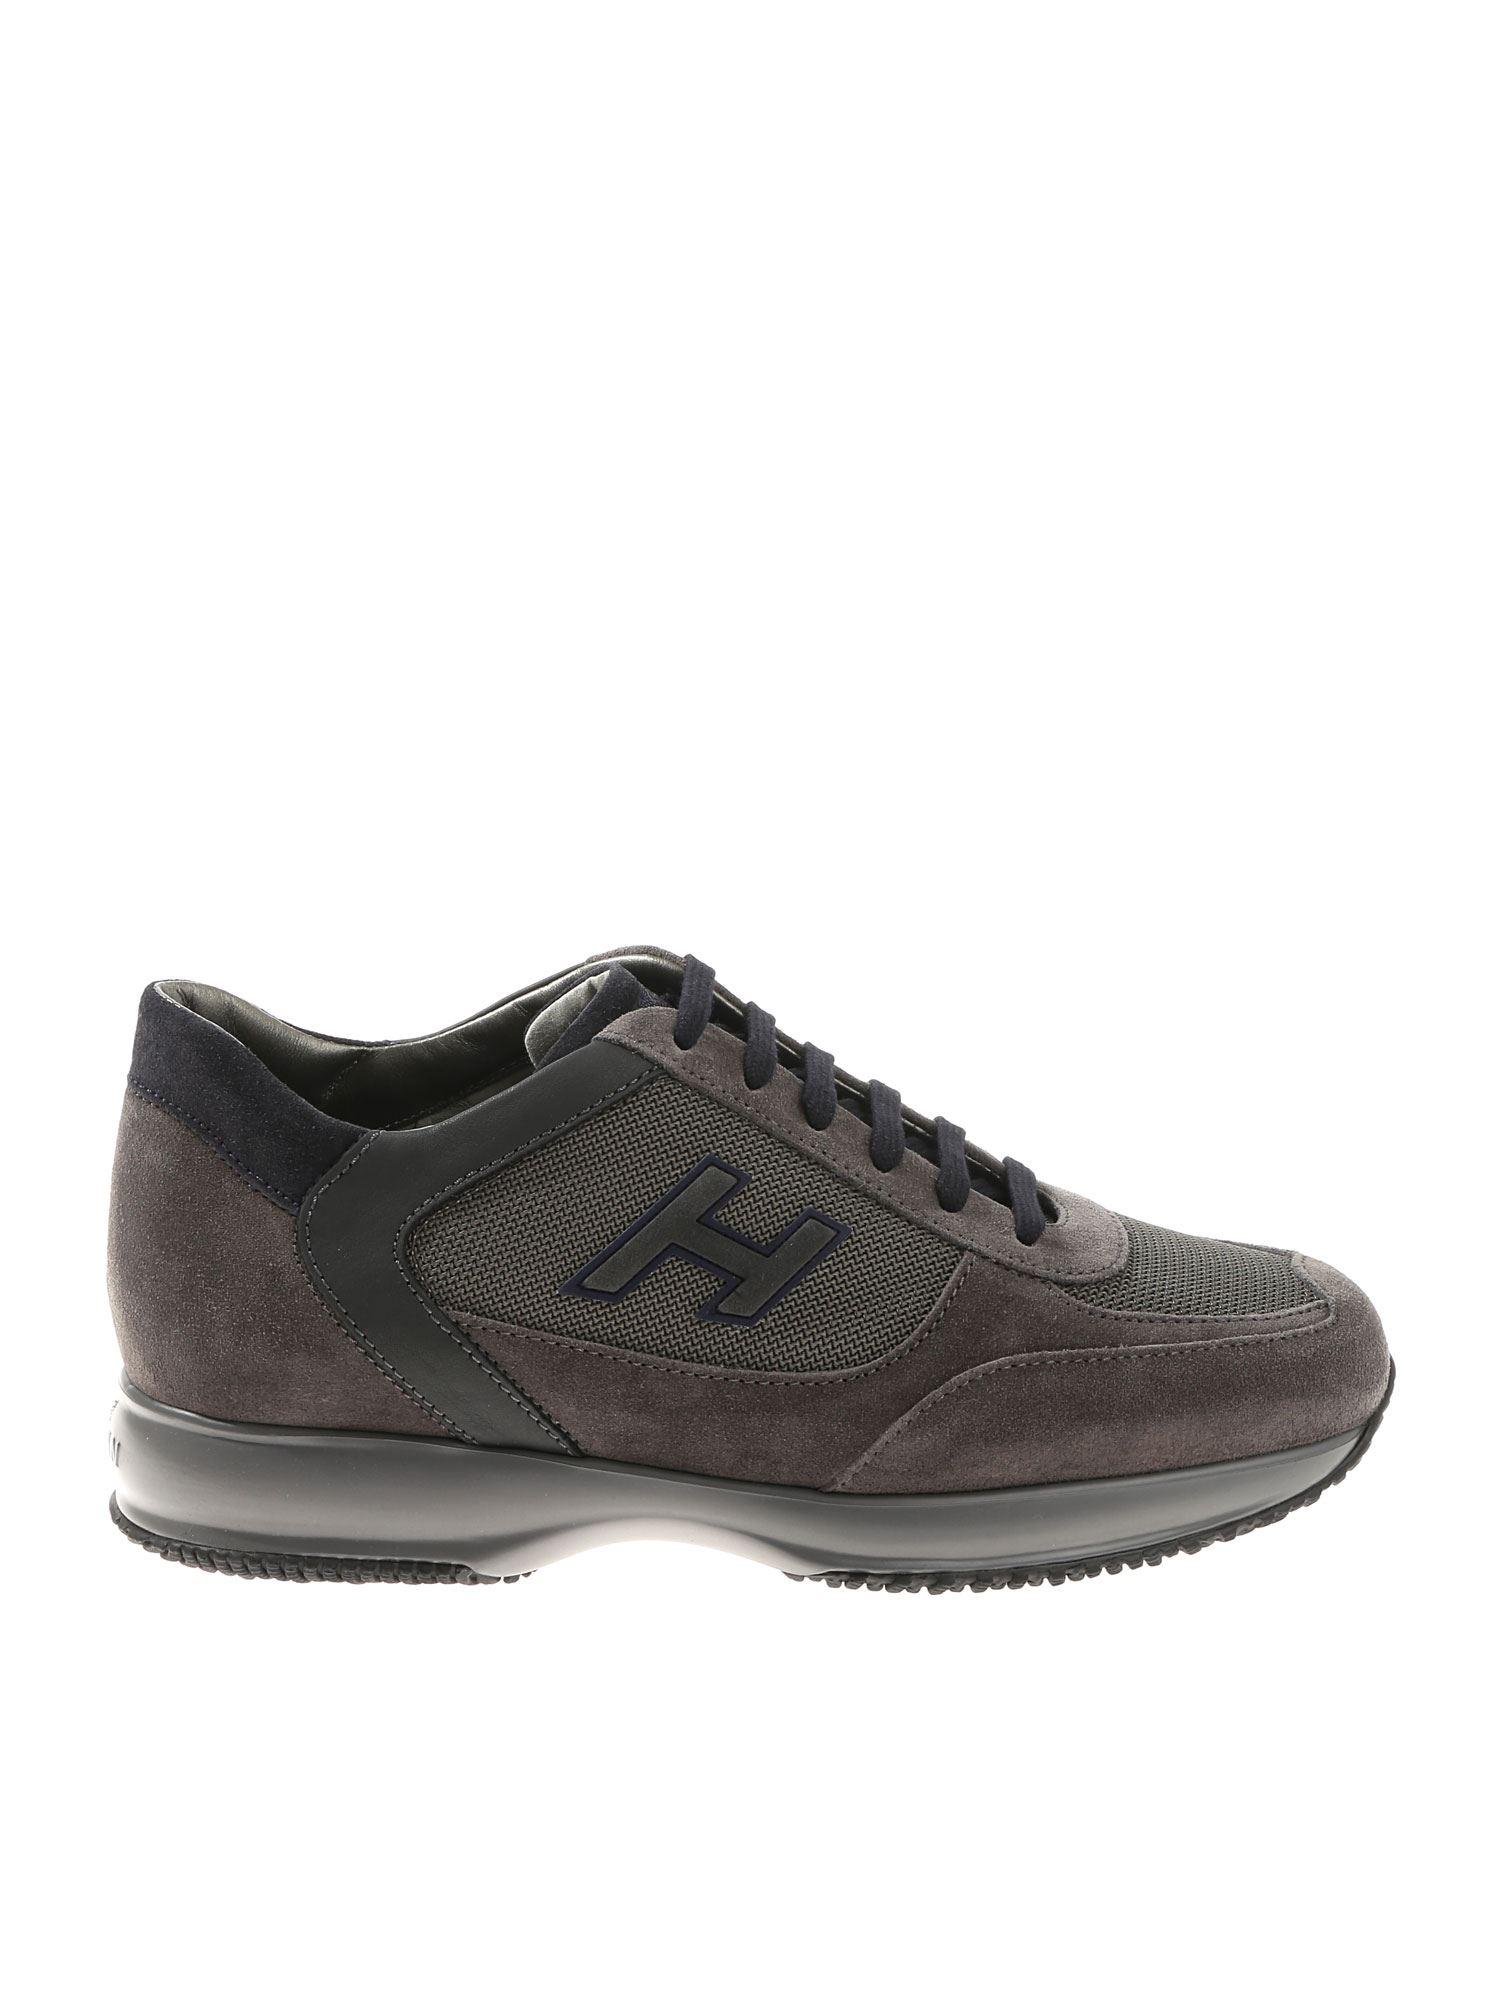 118fe2c66b0b Lyst - Hogan H Flock Interactive Gray And Blue Sneakers in Gray for Men